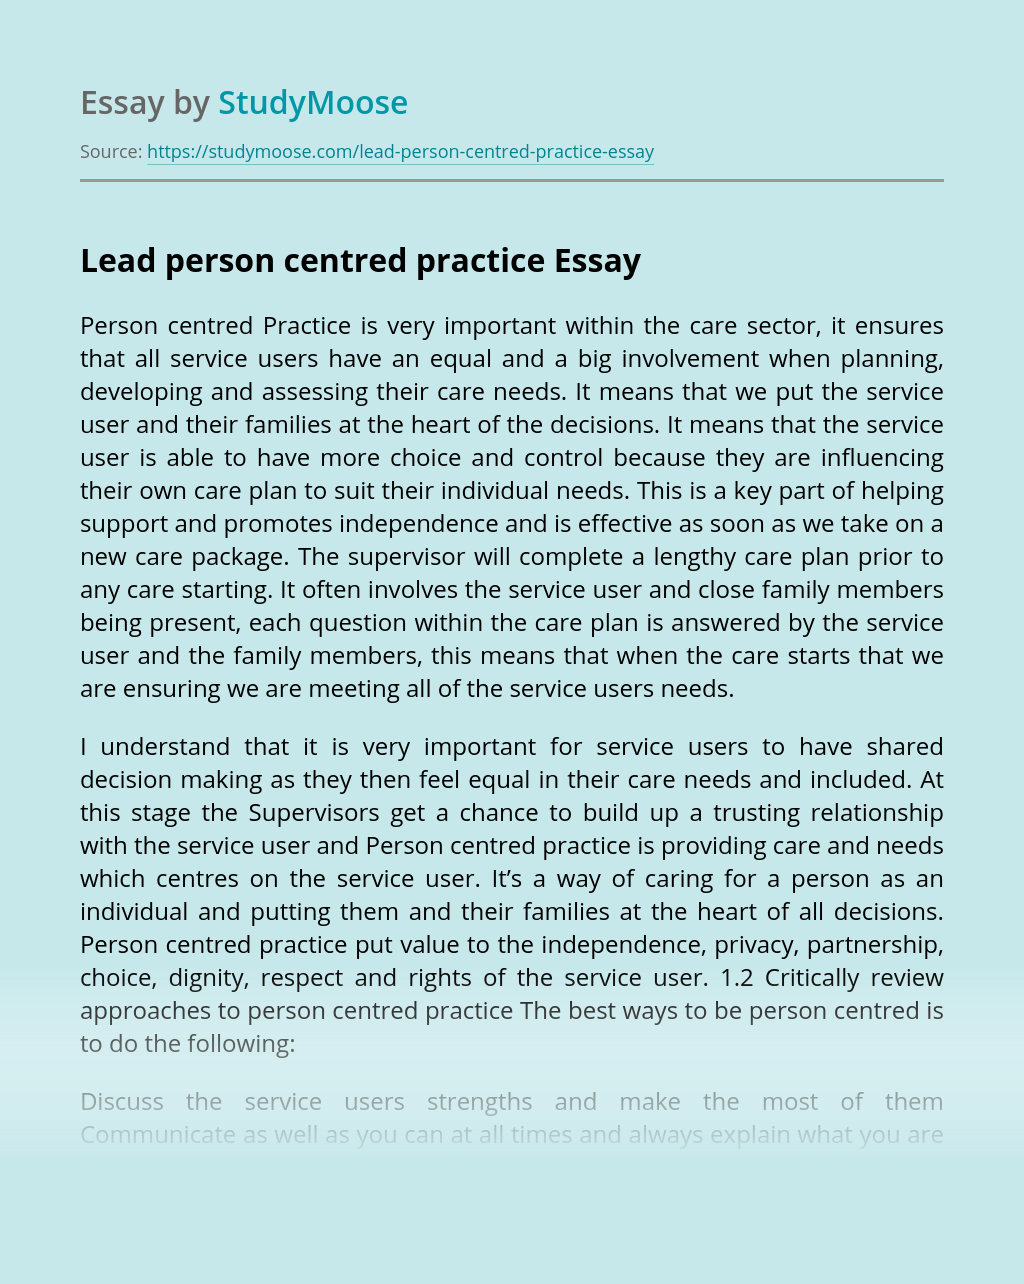 Lead Person Centred Practice